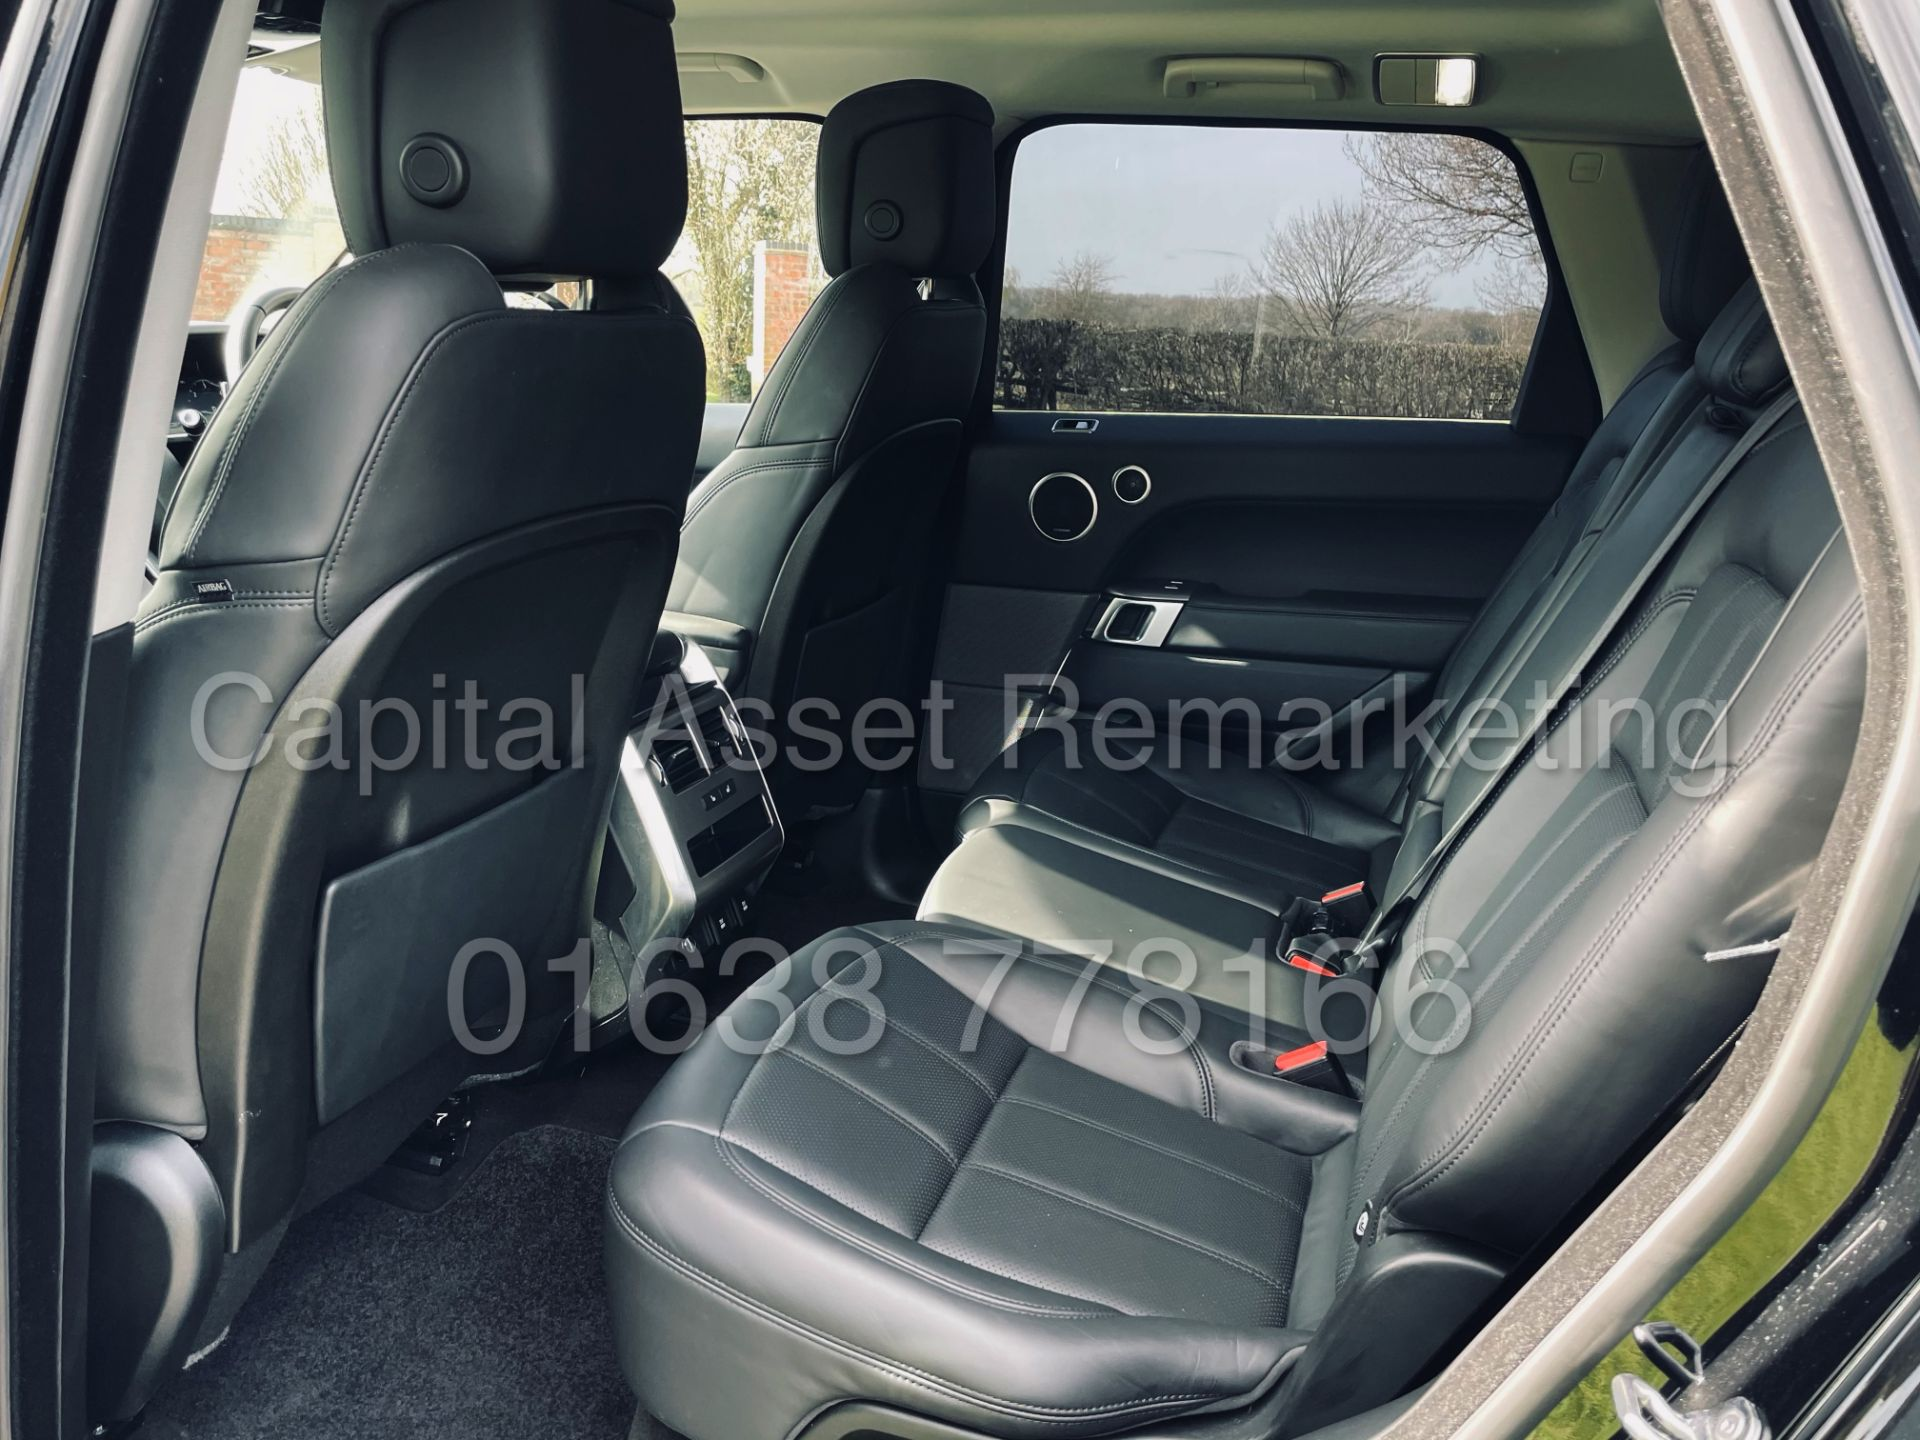 (On Sale) RANGE ROVER SPORT *HSE EDITION* SUV (2018 - NEW MODEL) '8 SPEED AUTO' *FULLY LOADED* - Image 26 of 55